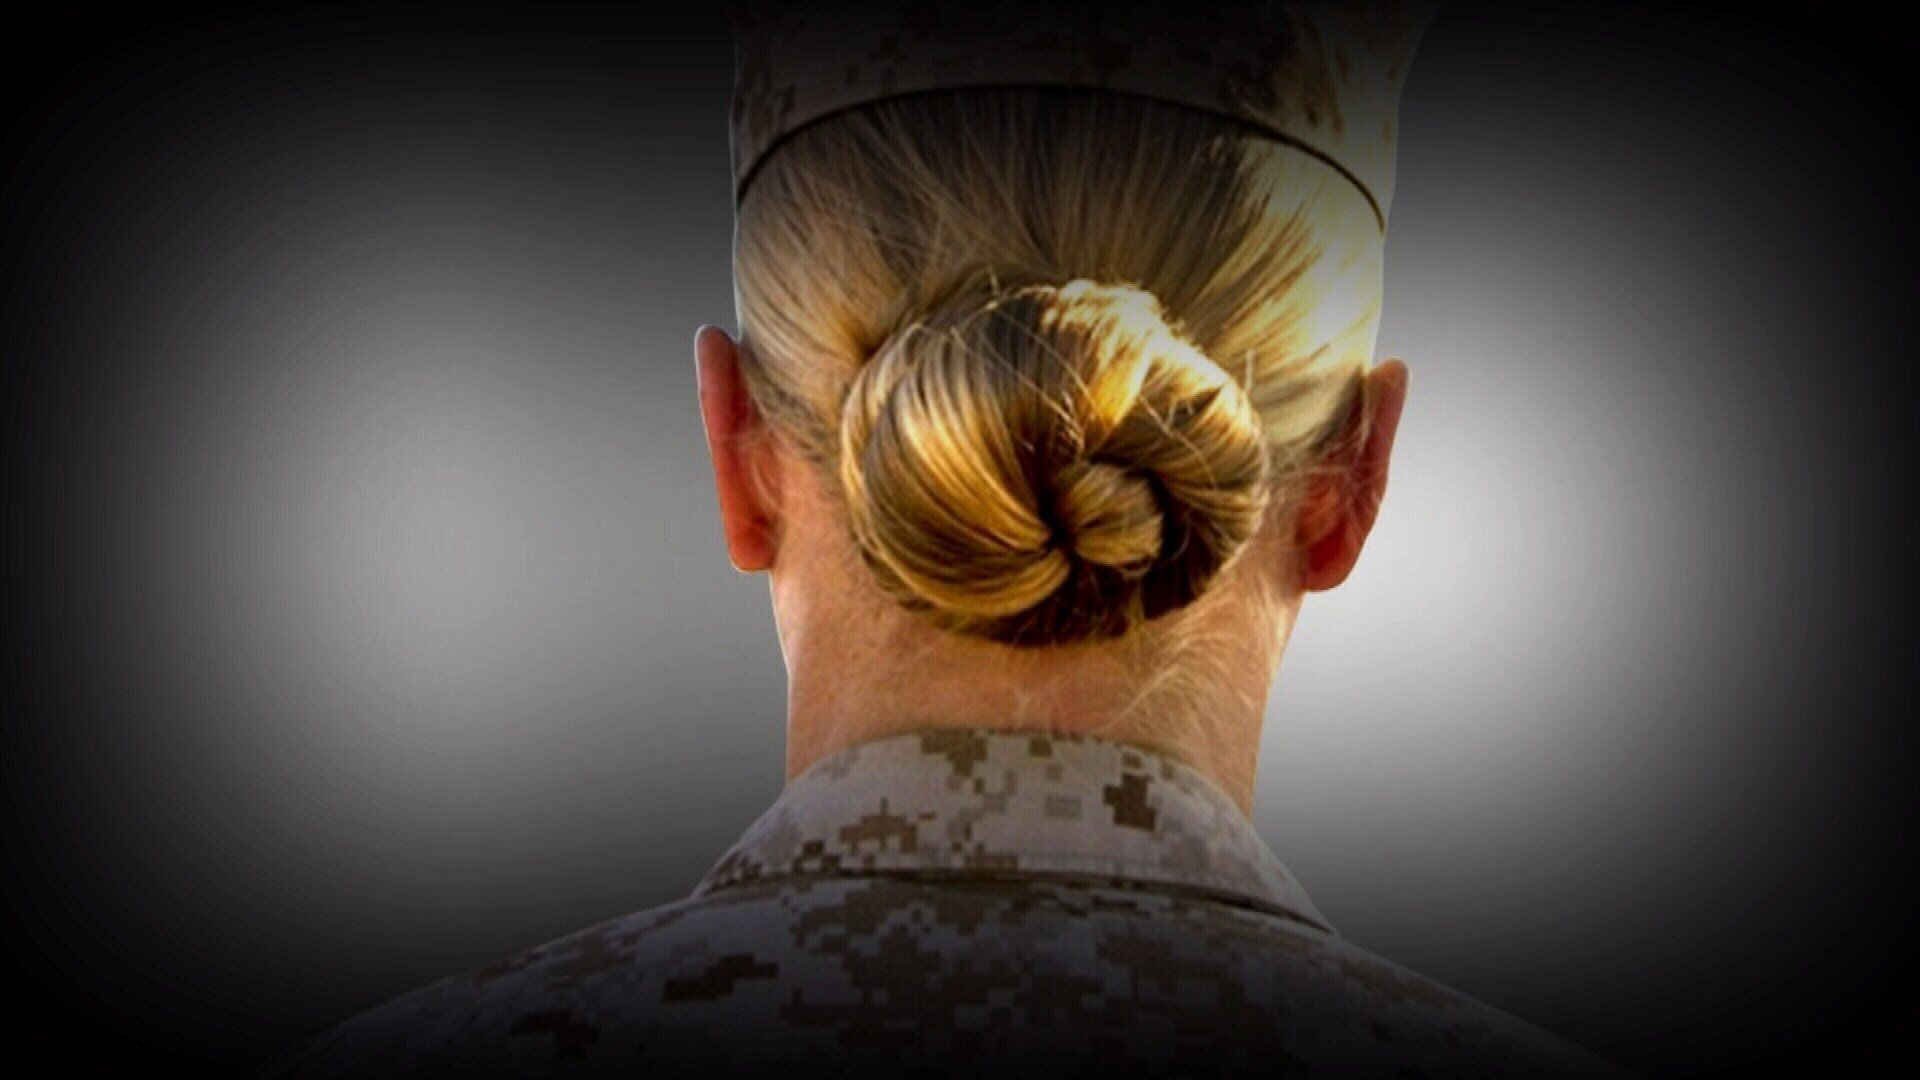 One in 4 women in the military is assaulted. Military sexual assault also impacts 1 in 100 men, who account for 40 percent of reported cases.